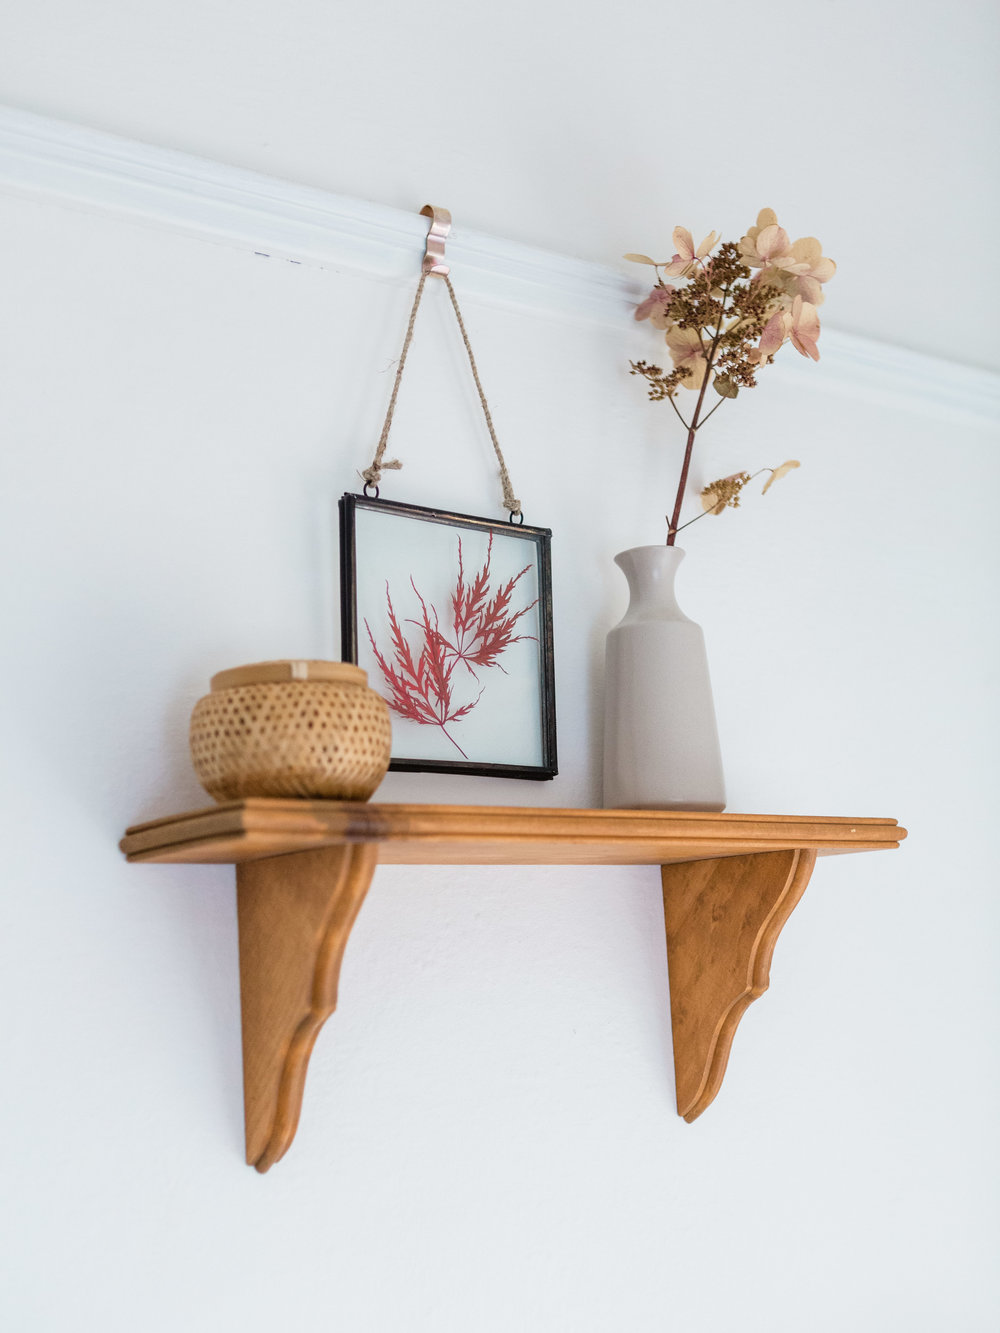 simple shelf decor ideas from foragedhome.com